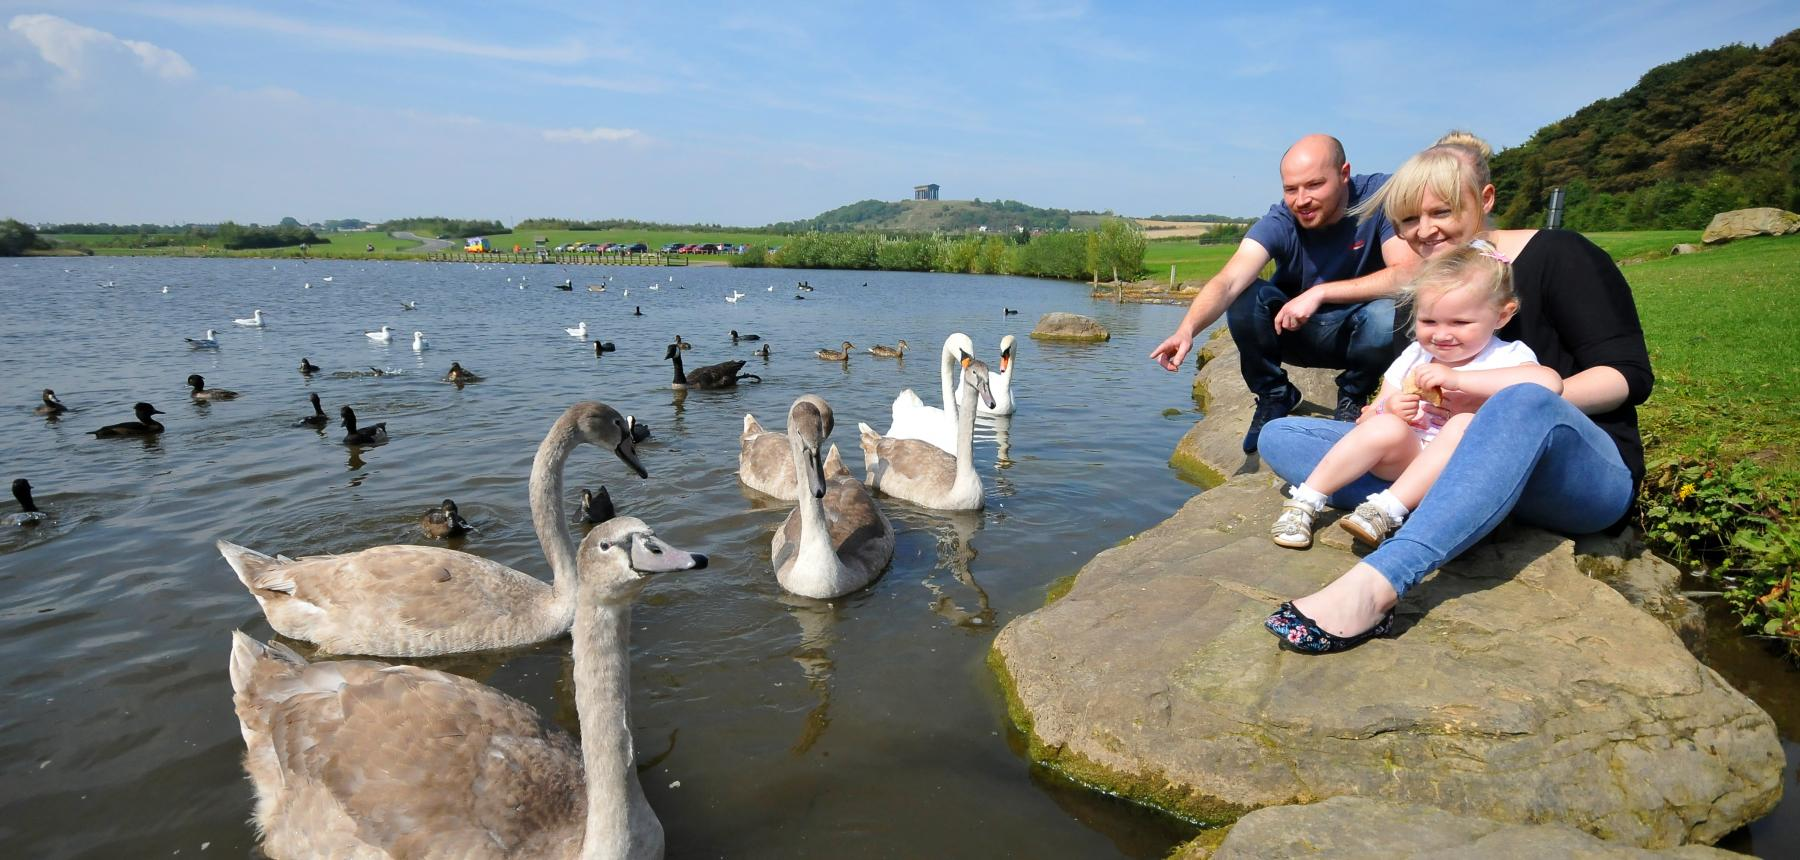 Family feeding swans at Herrington Country Park